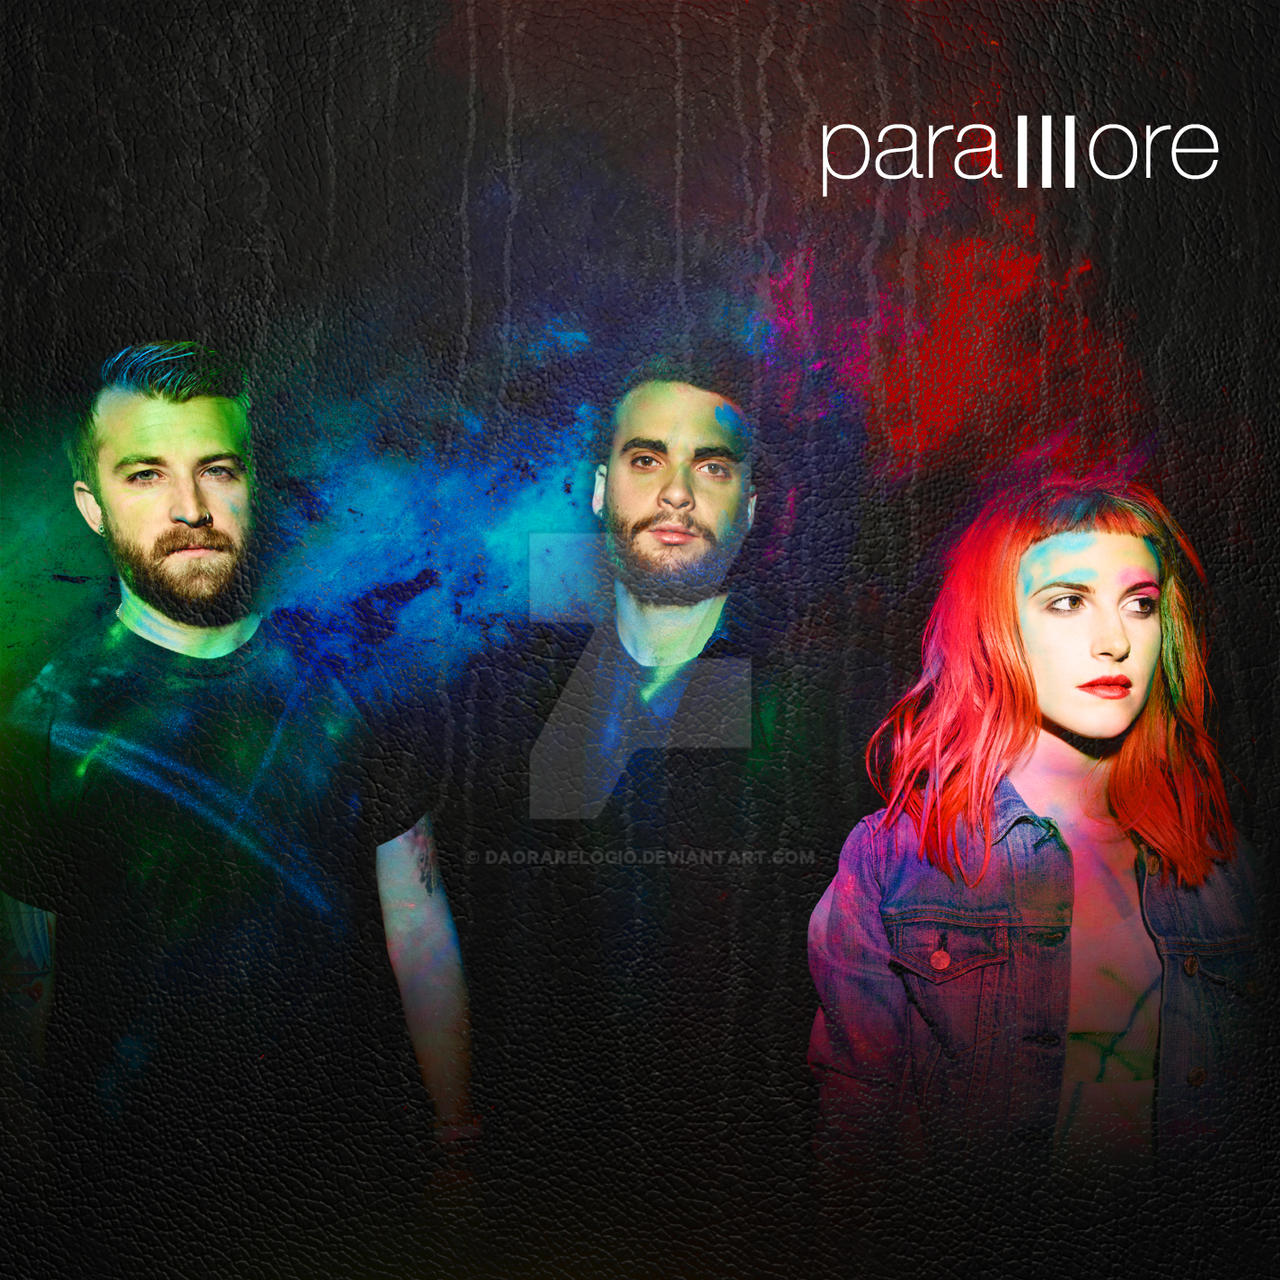 paramore paramore album cover -#main